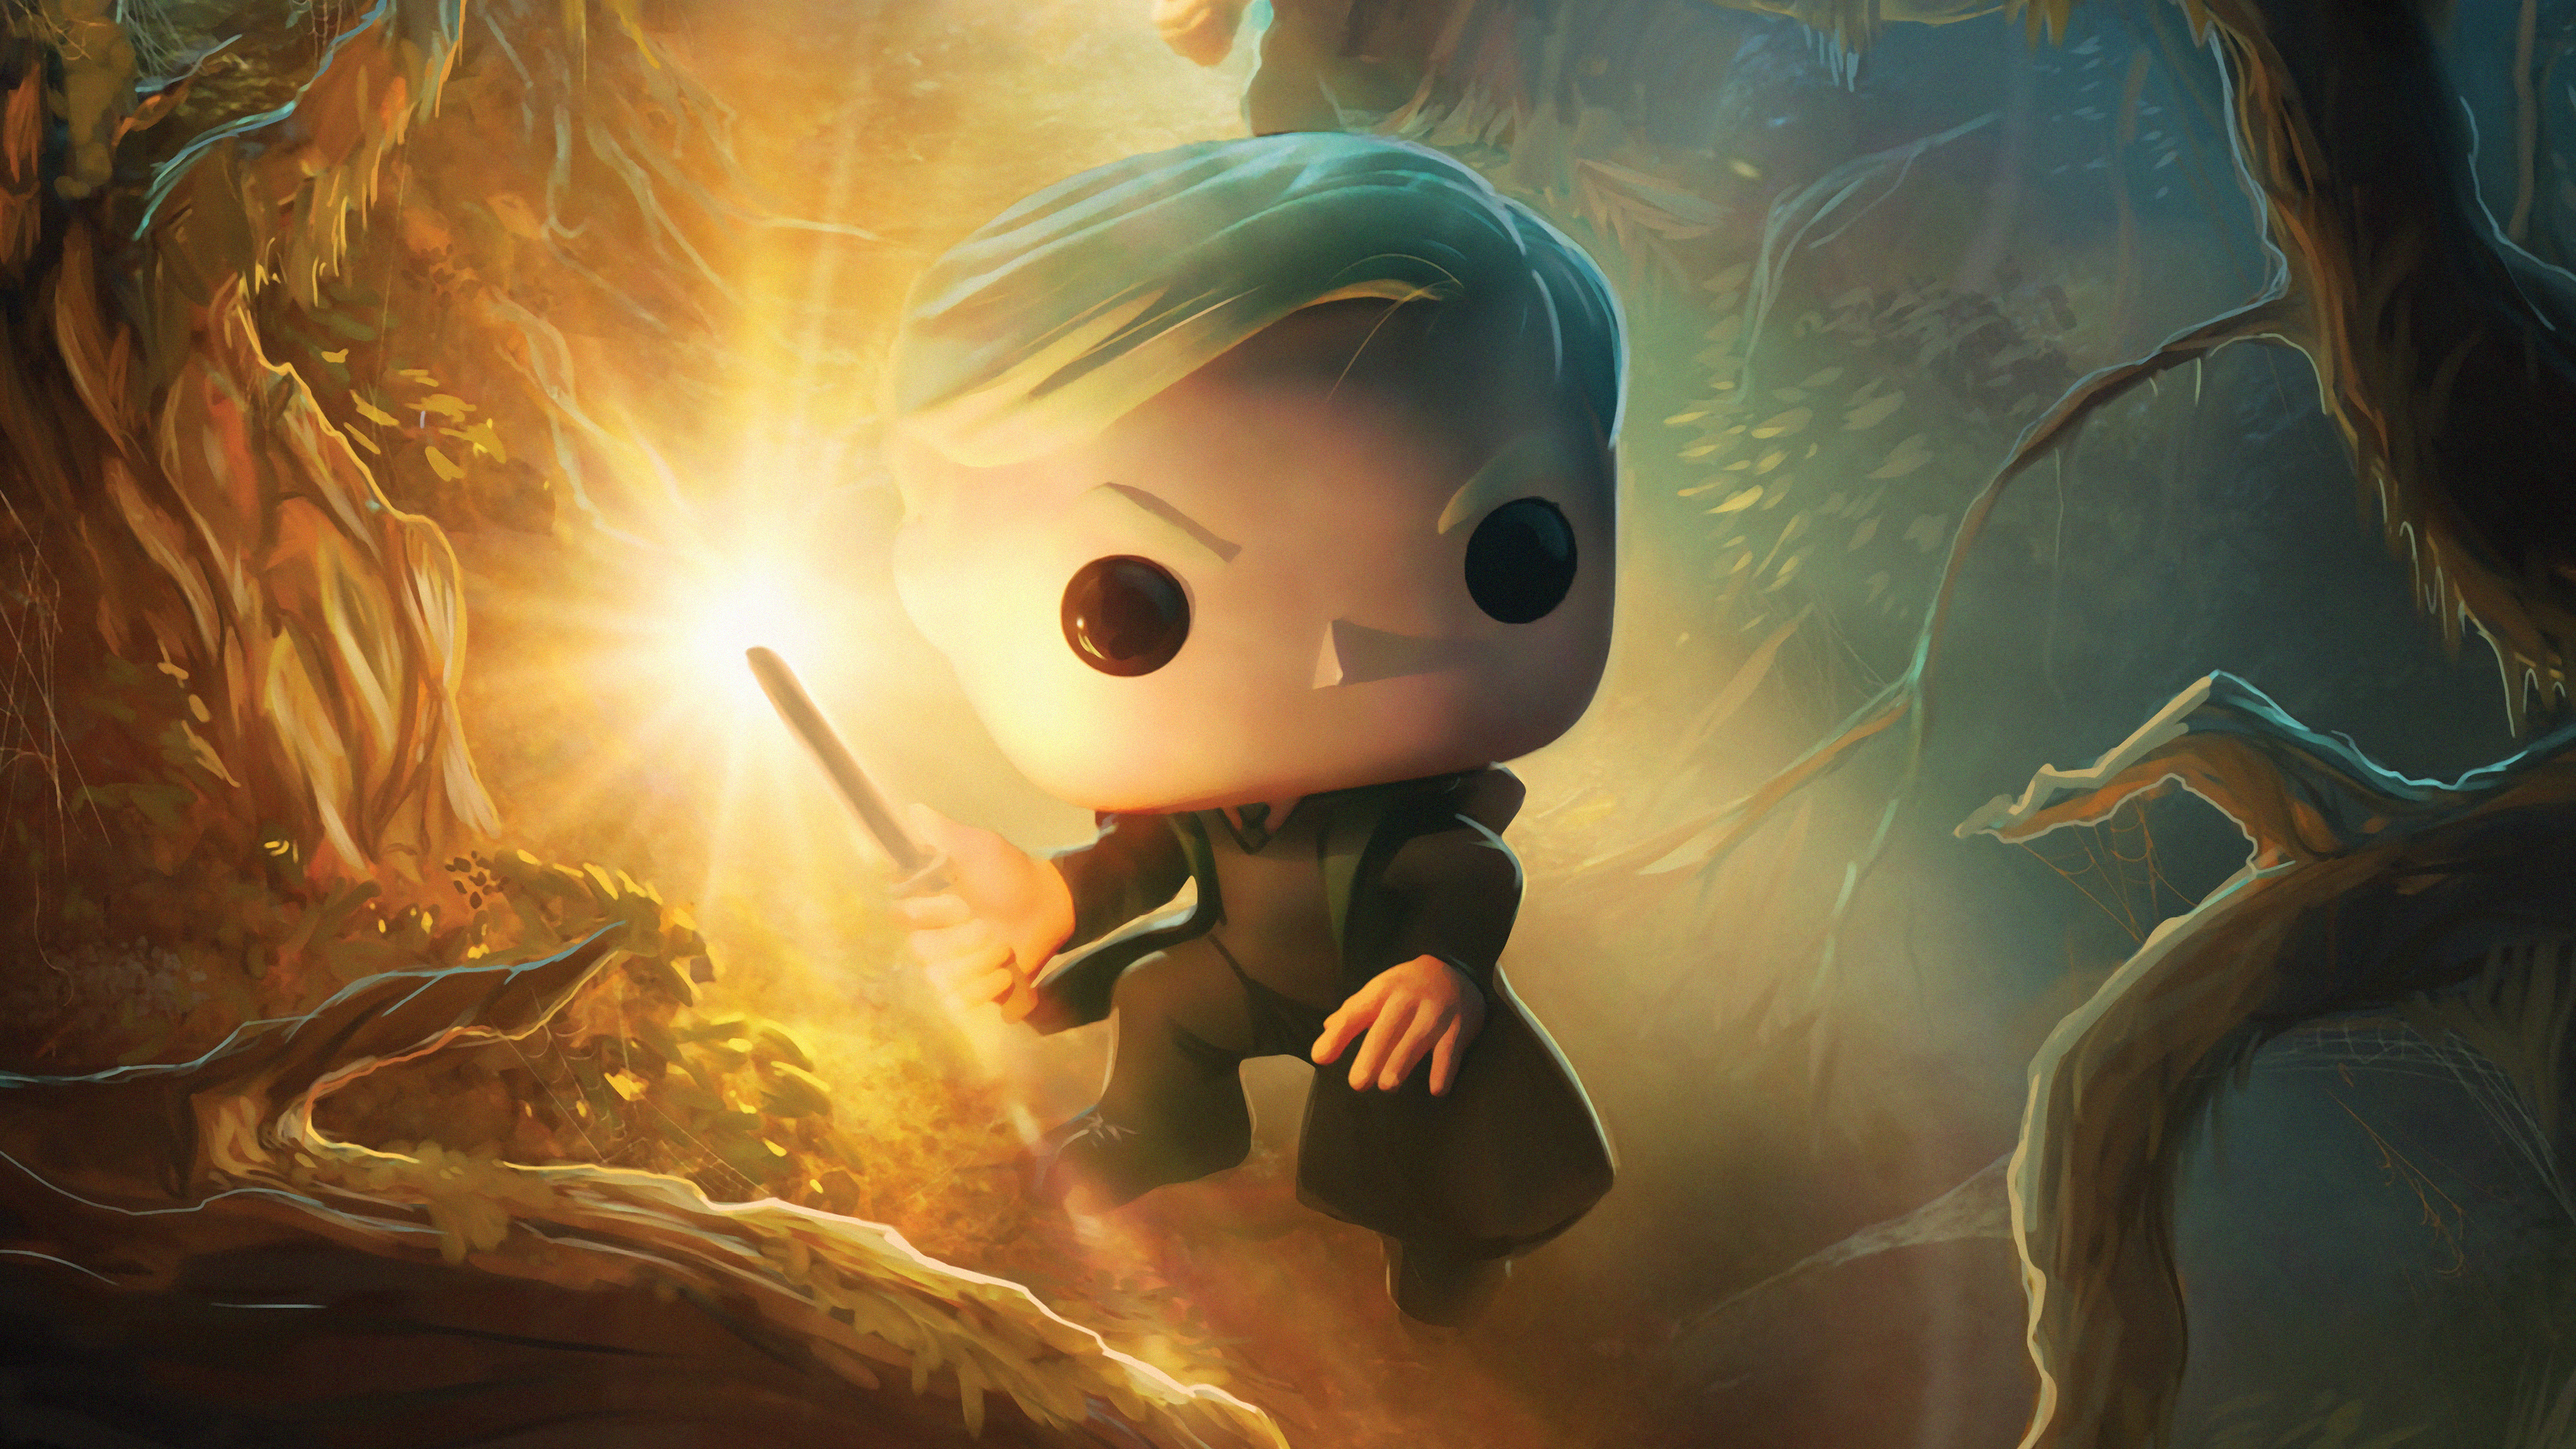 2019 Harry Potter Dc Funkoverse 4k, HD Games, 4k Wallpapers